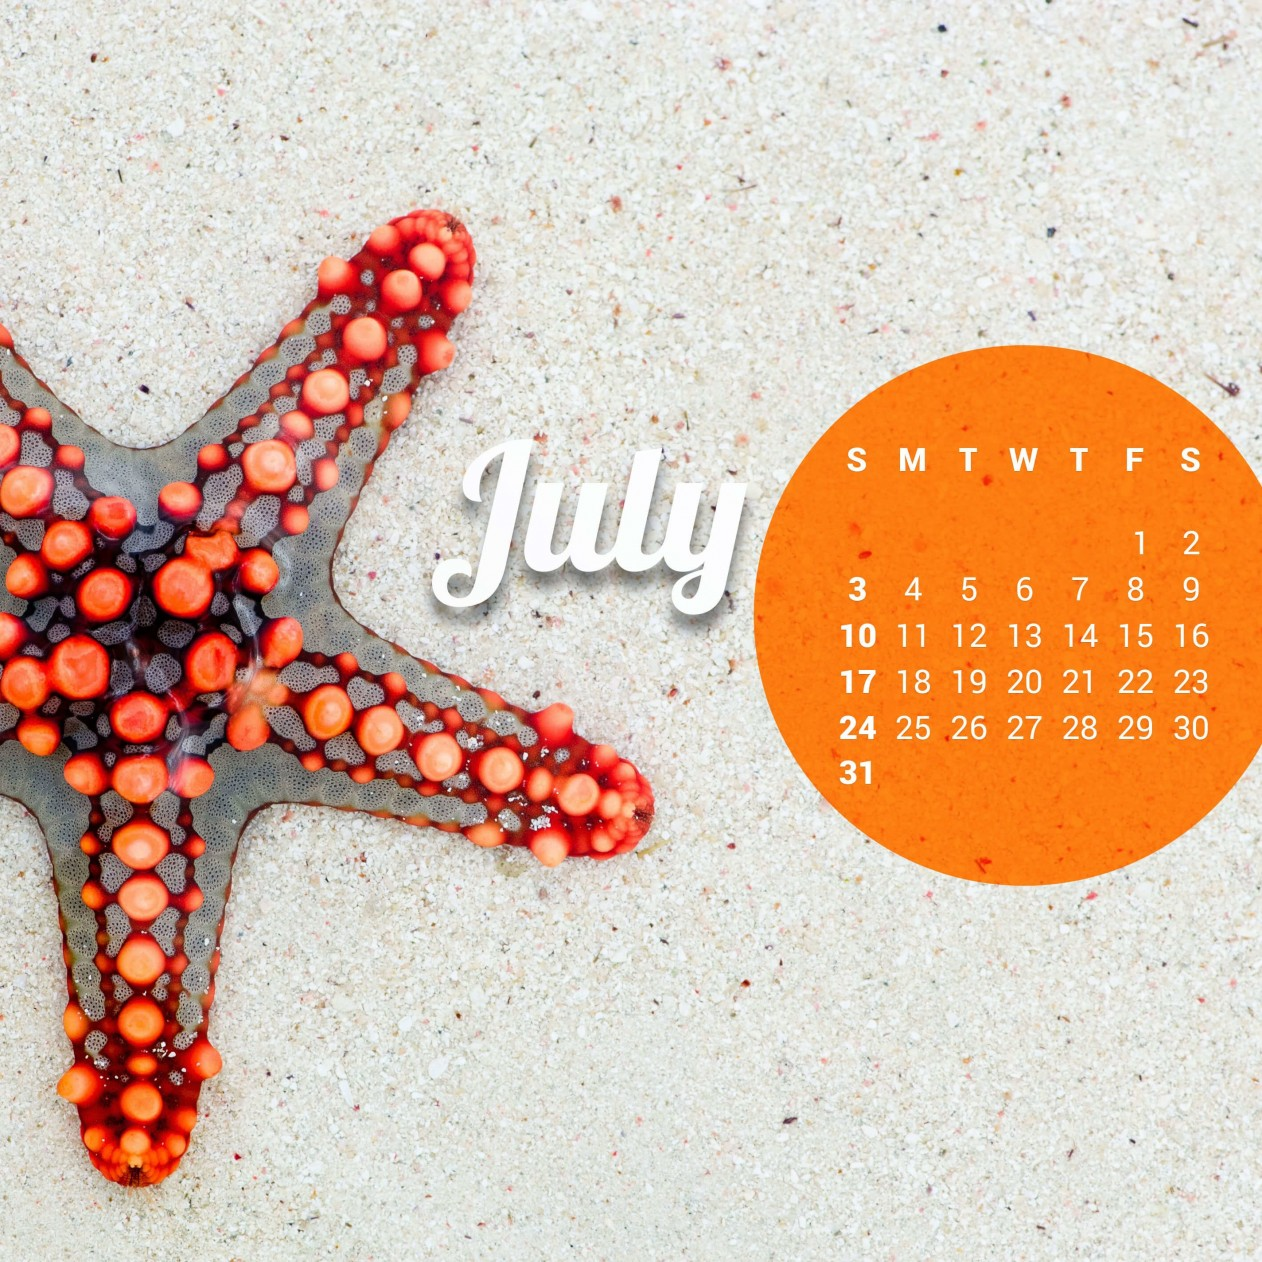 July 2016 Calendar Wallpaper for Apple iPad mini